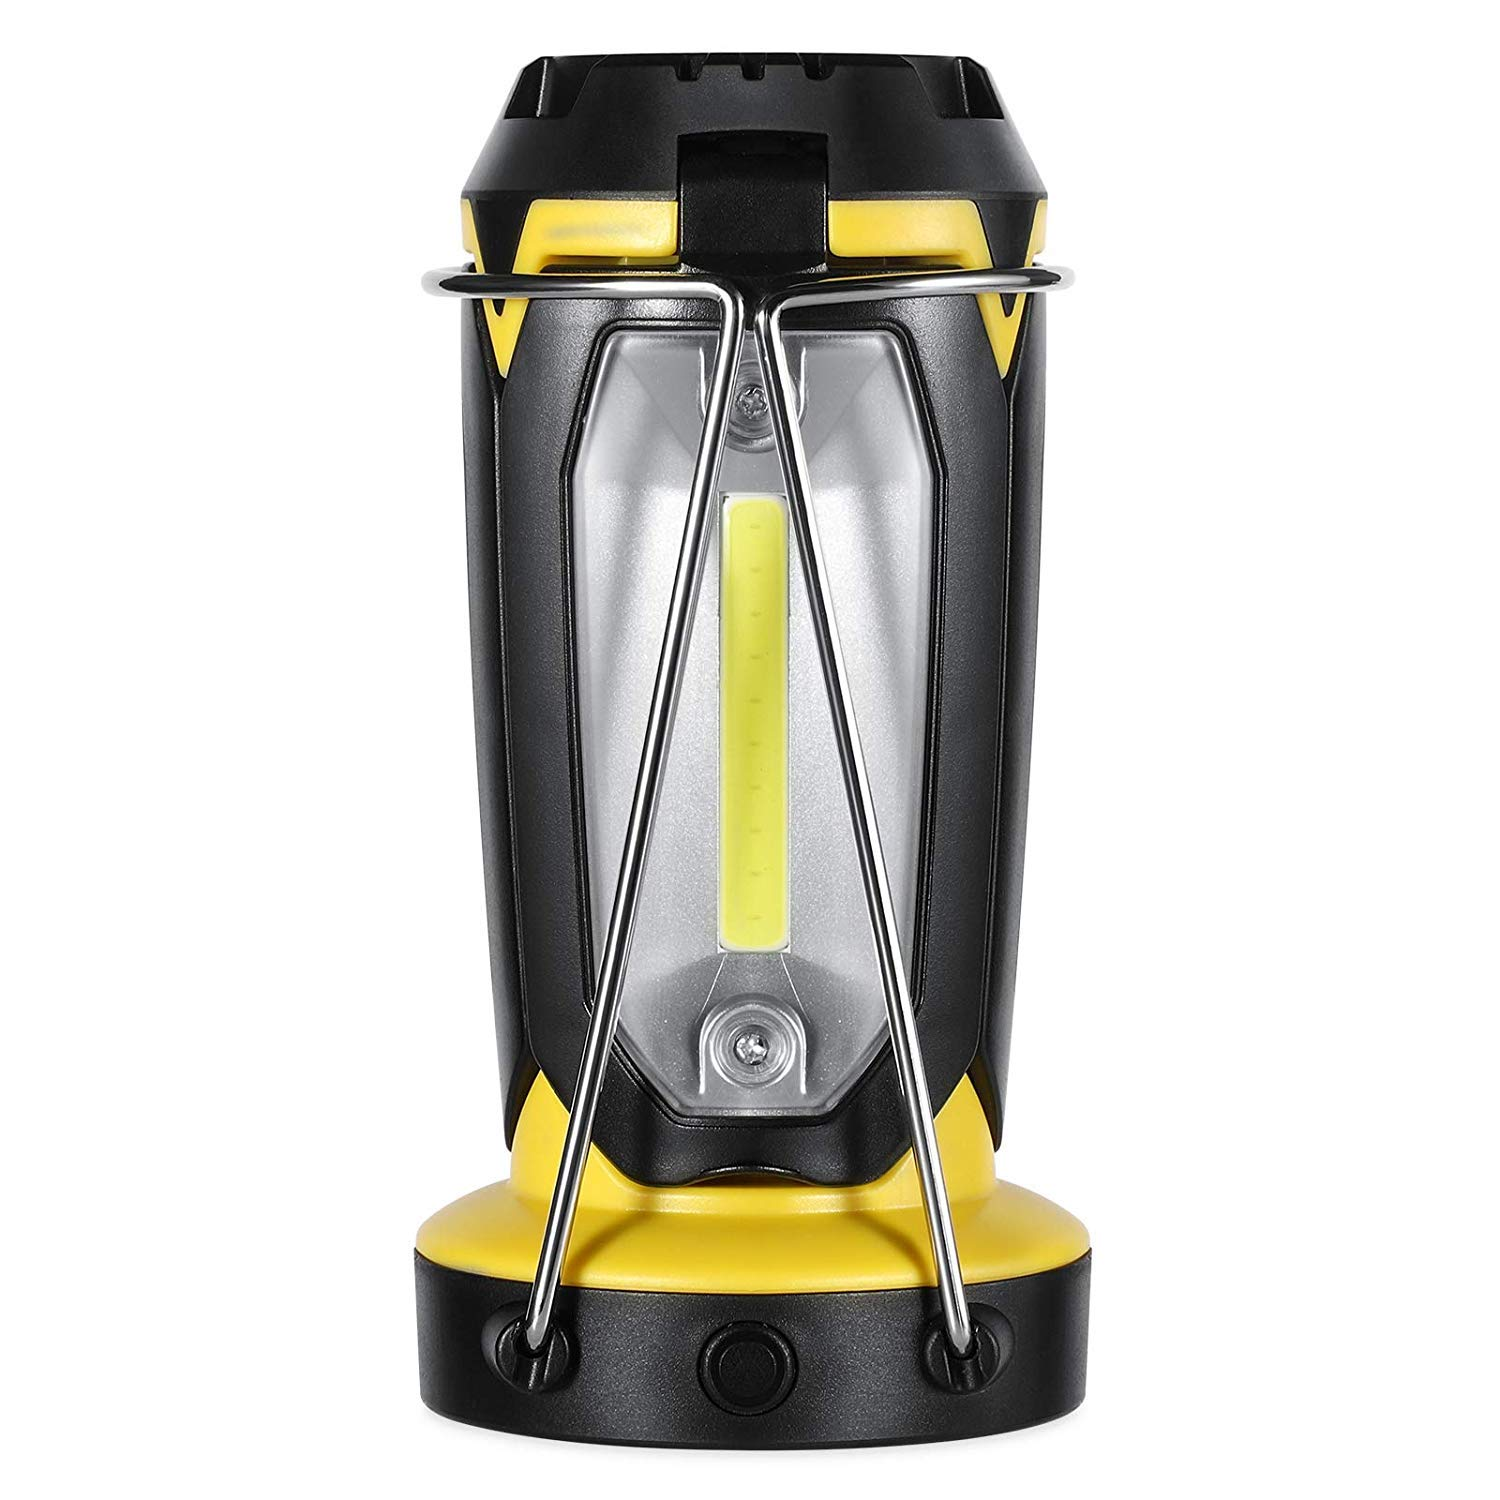 YsinoBear Multifunctional LED Camping Lantern, 1200mAh Rechargeable Tent Lamp Flashlight with Power Bank Collapsible Ultra Bright COB WLED for Camping Survival Kit for Emergency, Hurricane Outdoor Lig